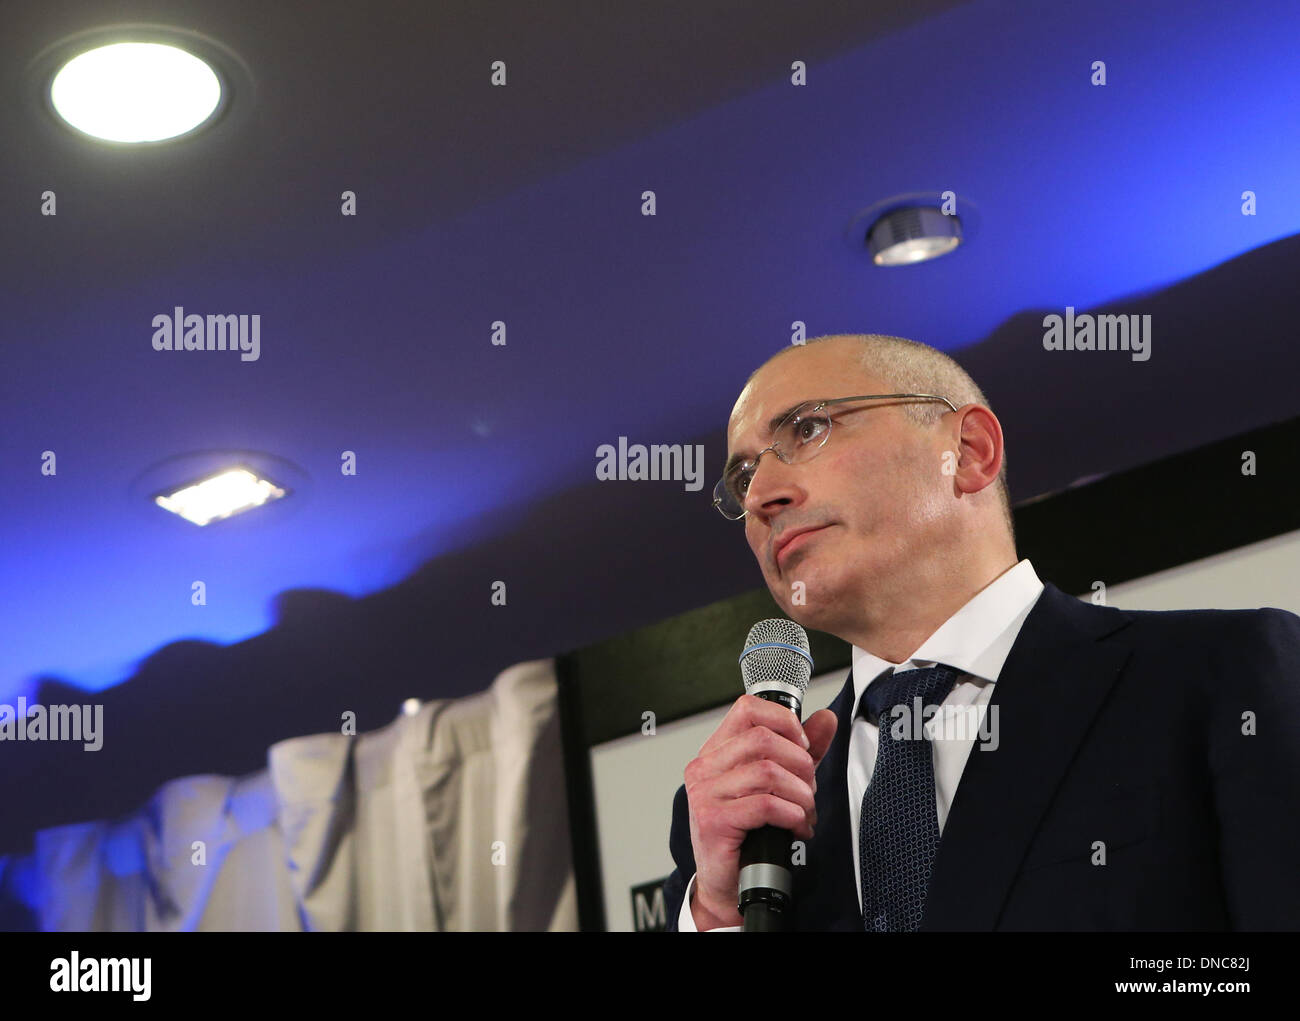 Berlin, Germany. 22nd Dec, 2013. Mikhail Khodorkovsky speaks during a press conference in Berlin, Germany, on Dec. 22, 2013. Mikhail Khodorkovsky, a former oil tycoon and one of Russia's most famous prisoners, said here on Sunday that he will not engage in Russian politics or fund the country's political opposition. Credit:  Zhang Fan/Xinhua/Alamy Live News - Stock Image